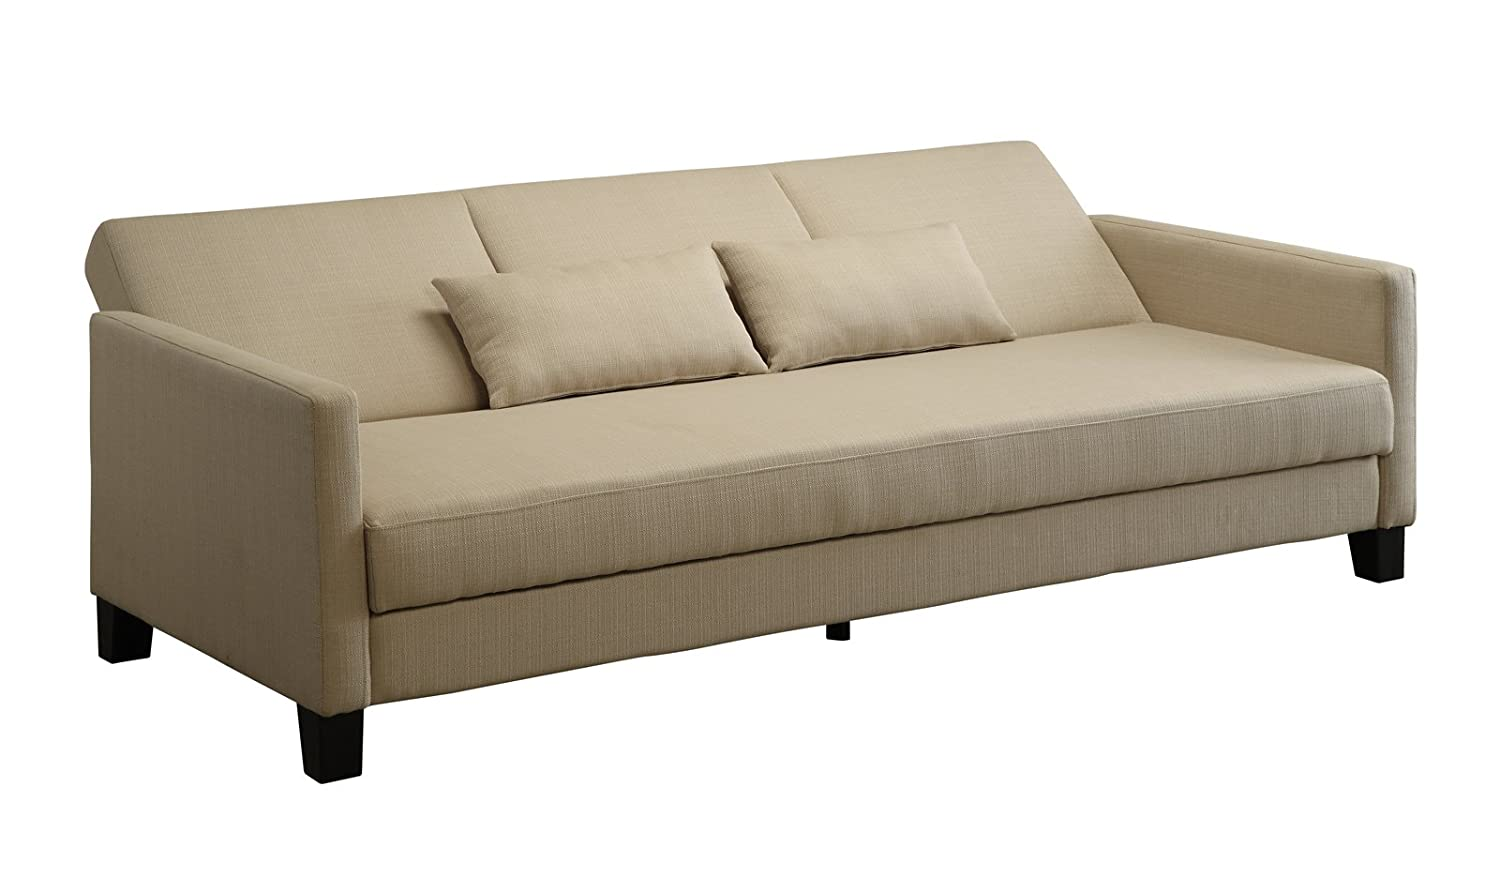 Awesome Dhp Vienna Sofa Sleeper With 2 Pillows Amazon In Home Short Links Chair Design For Home Short Linksinfo